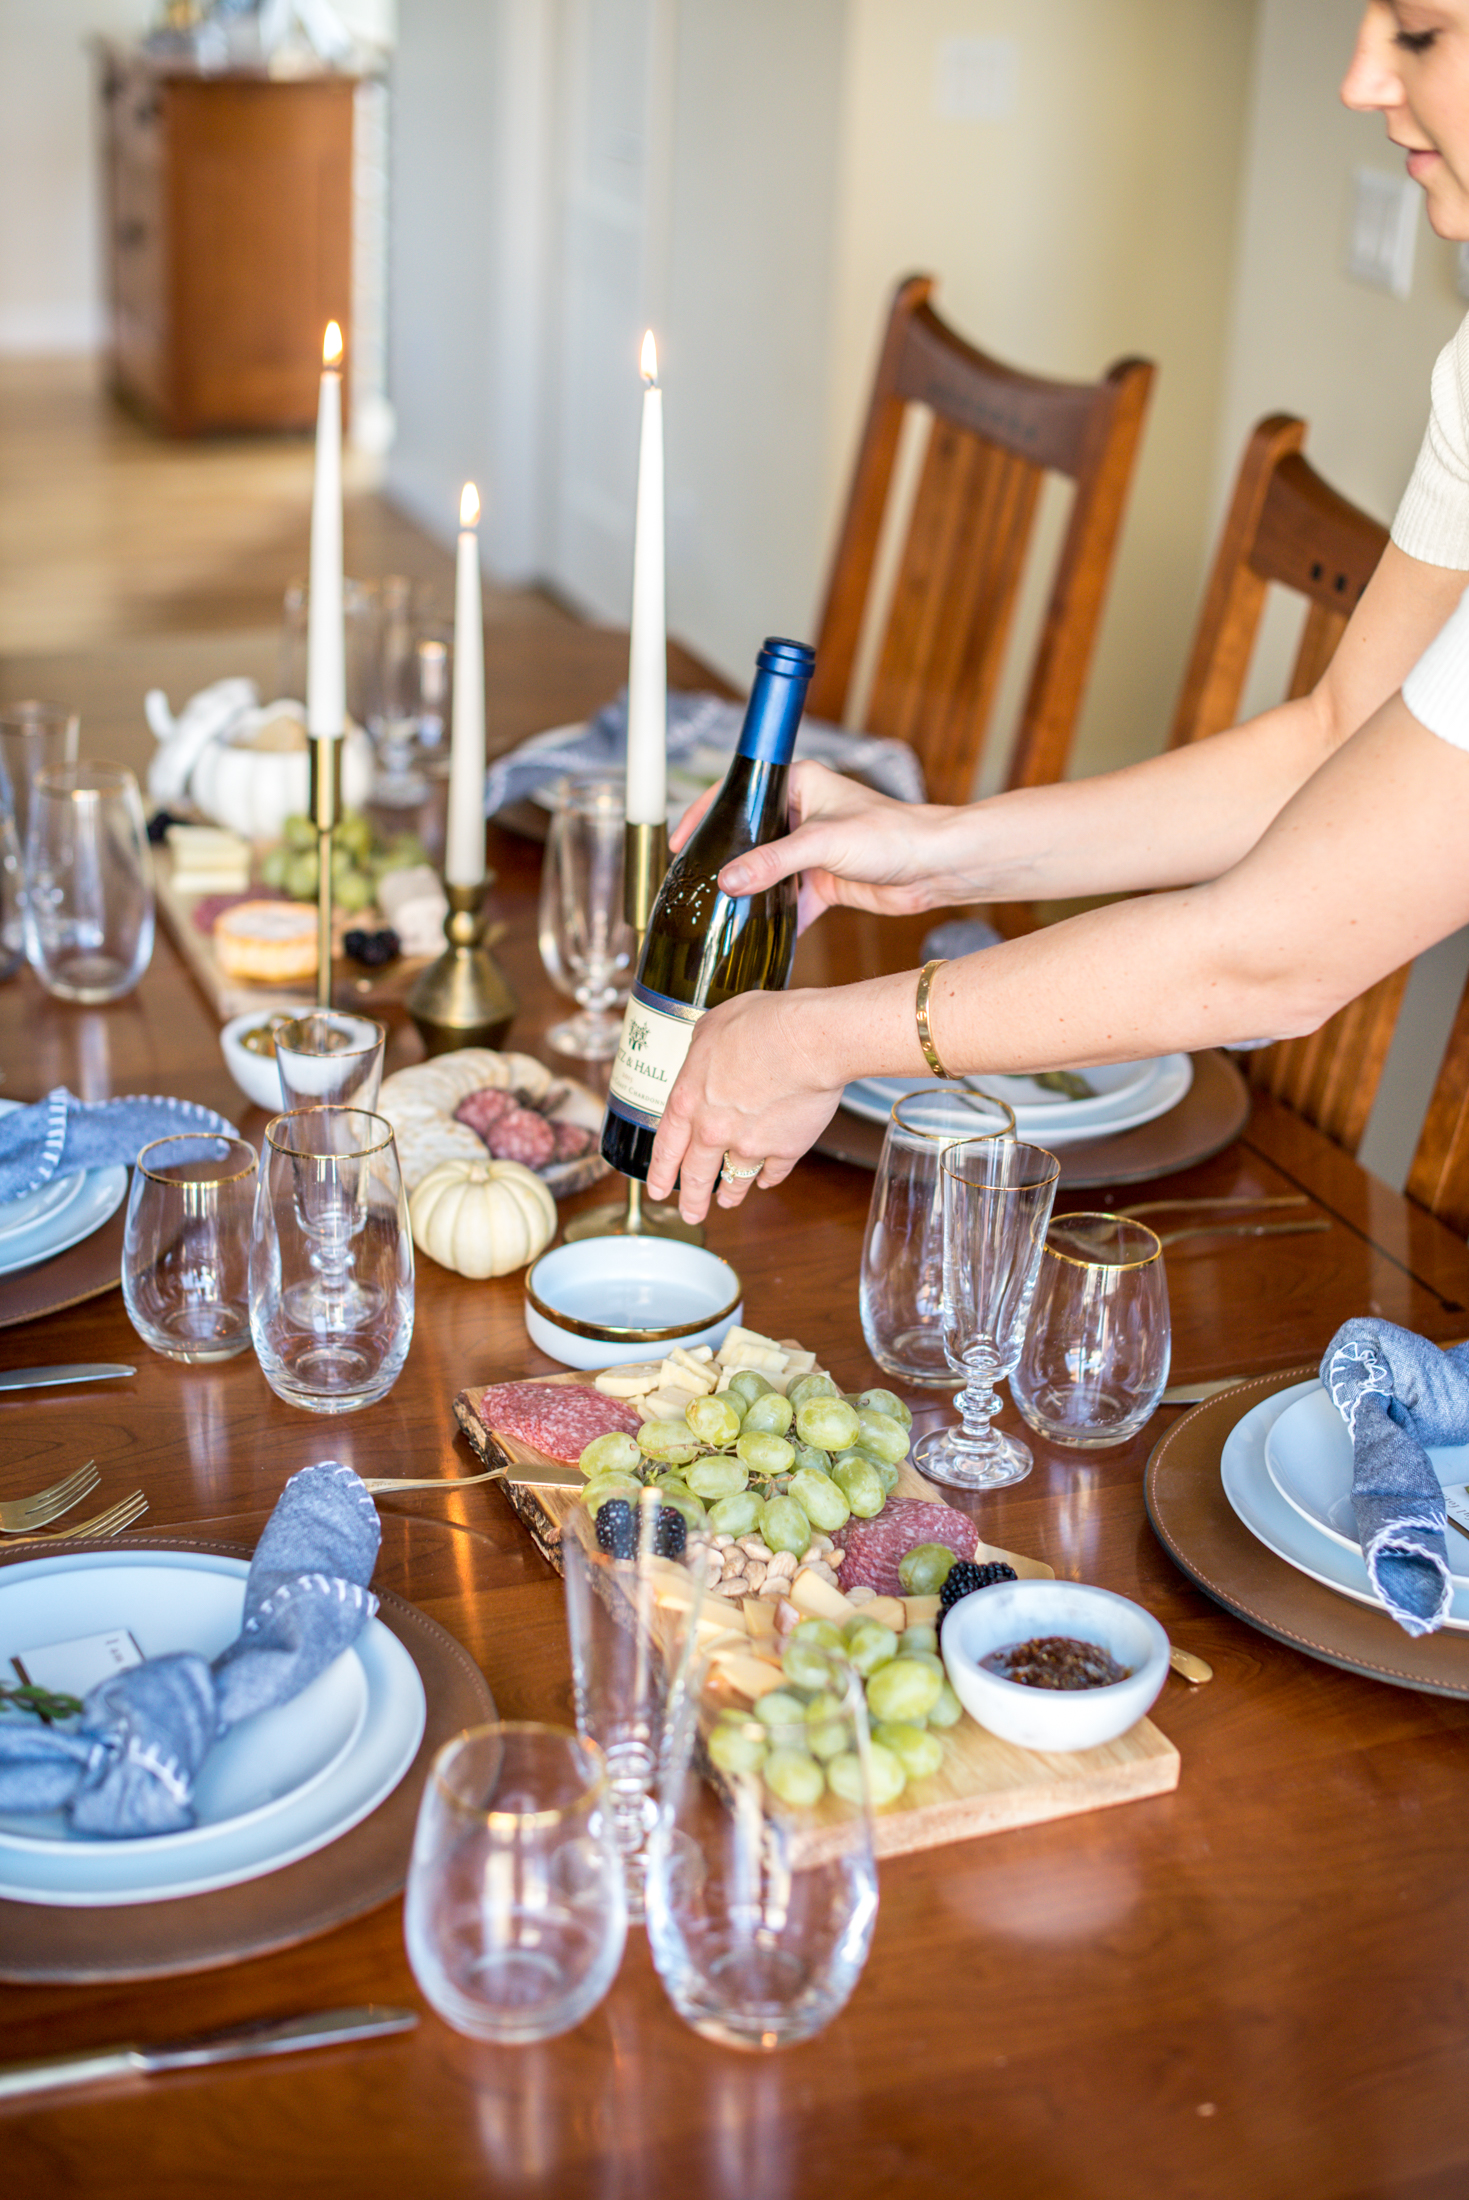 Always keep bottles of wine on the table! It allows for guests to always have access to a fresh glass of wine and it is one less thing you need to worry ... & The Every Hostess - A Rustic Thanksgiving Table Setting - The Every ...